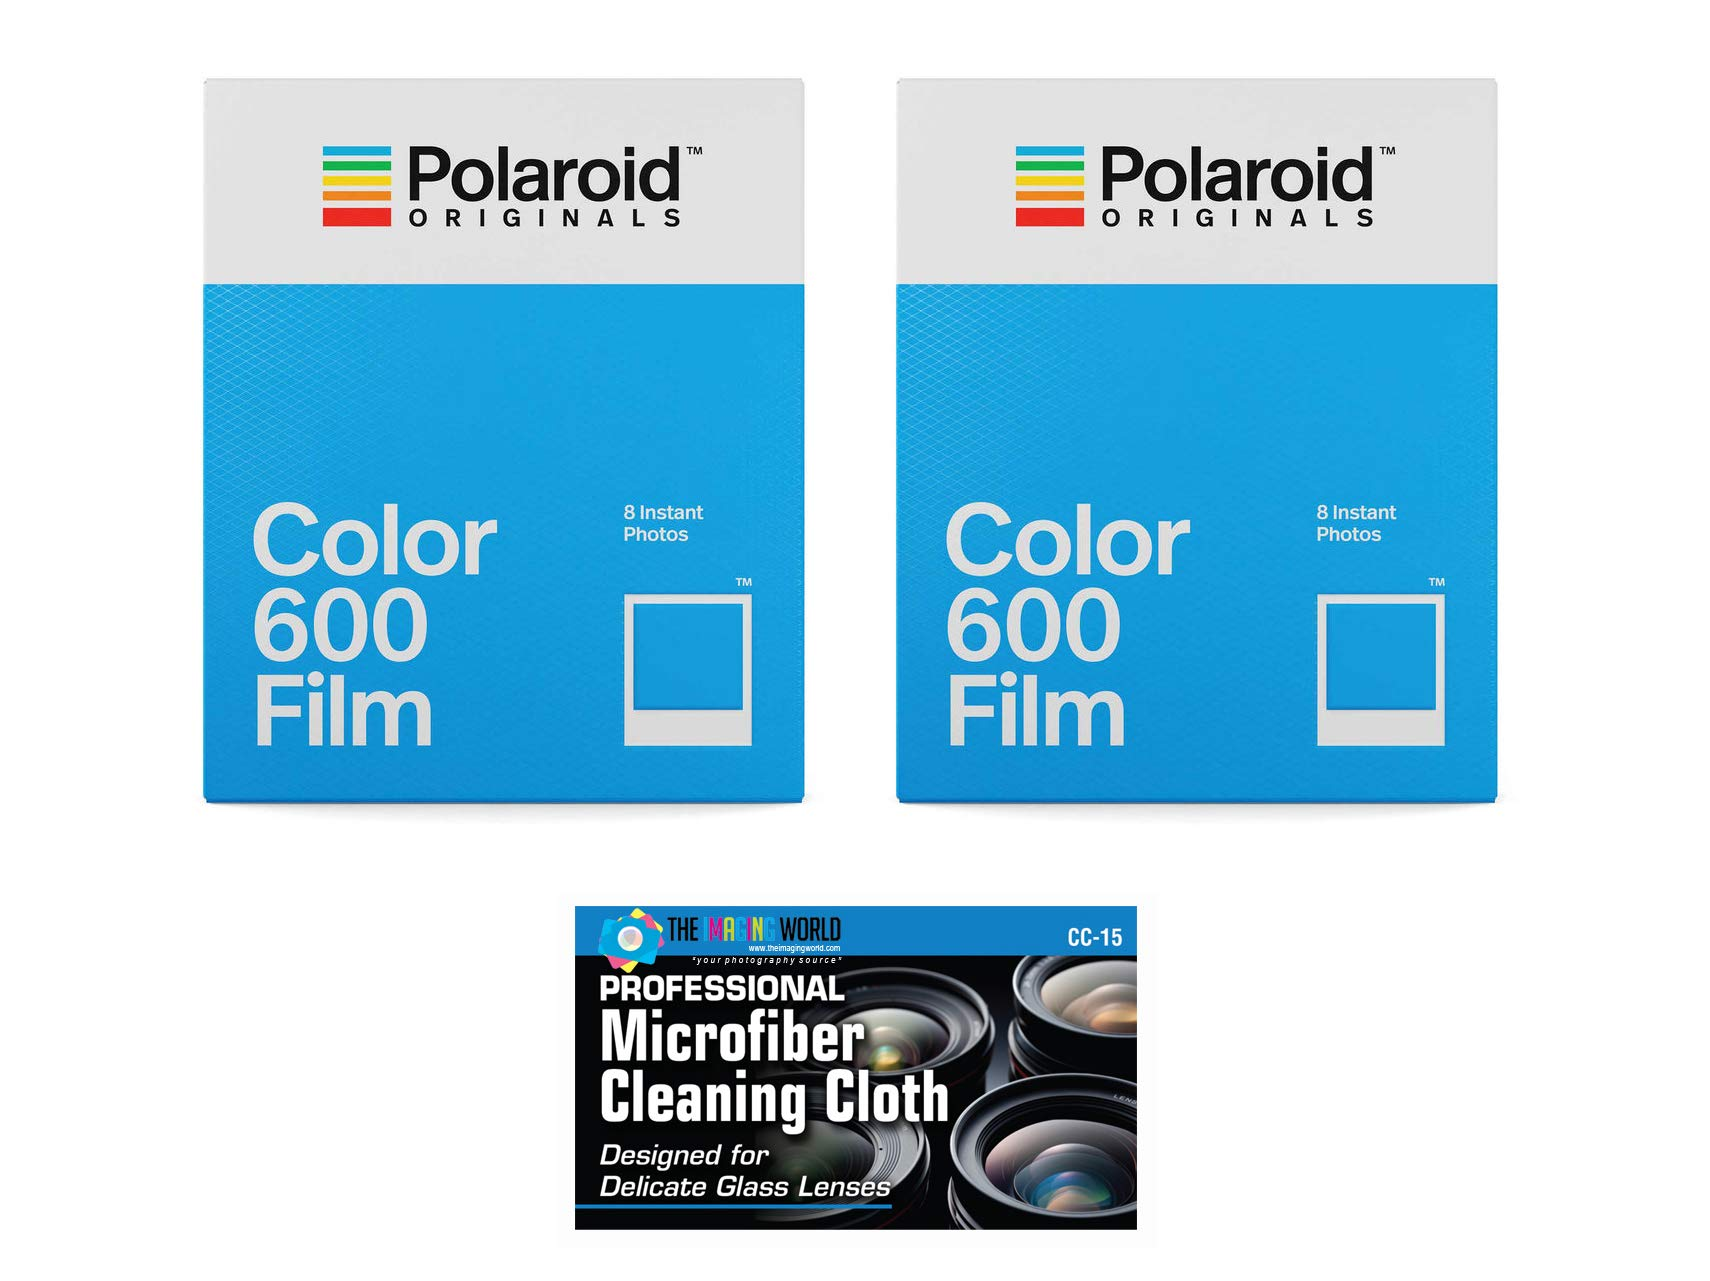 Impossible/Polaroid Instant Color Film for Polaroid 600 and Polaroid Originals OneStep Cameras - 2 Pack by The Imaging World